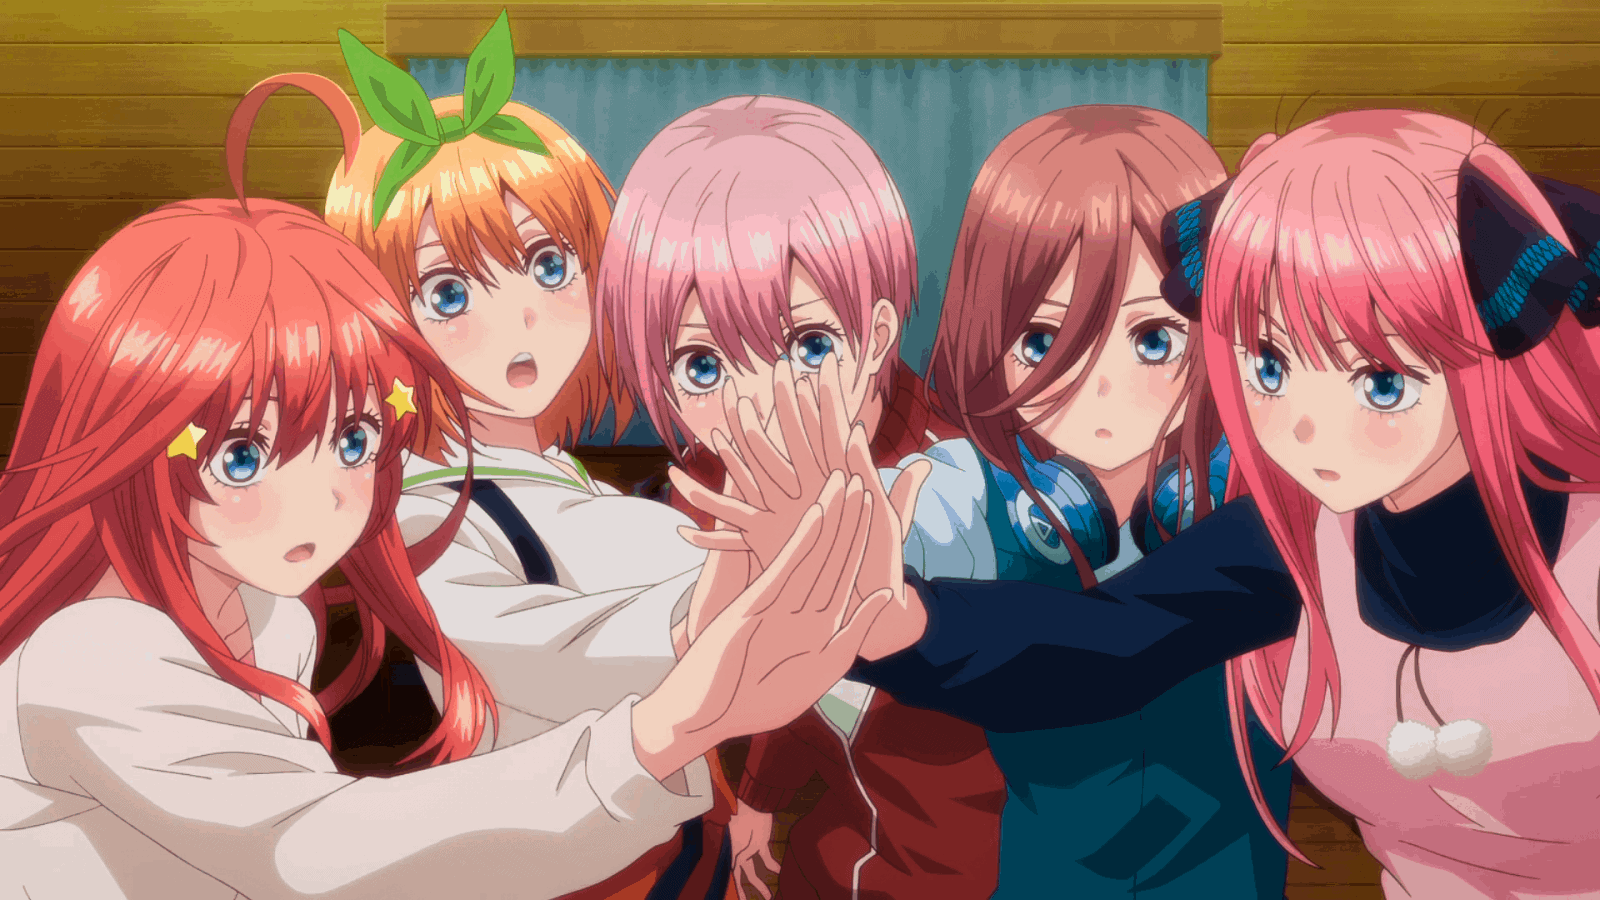 5-toubun no Hanayome season 2